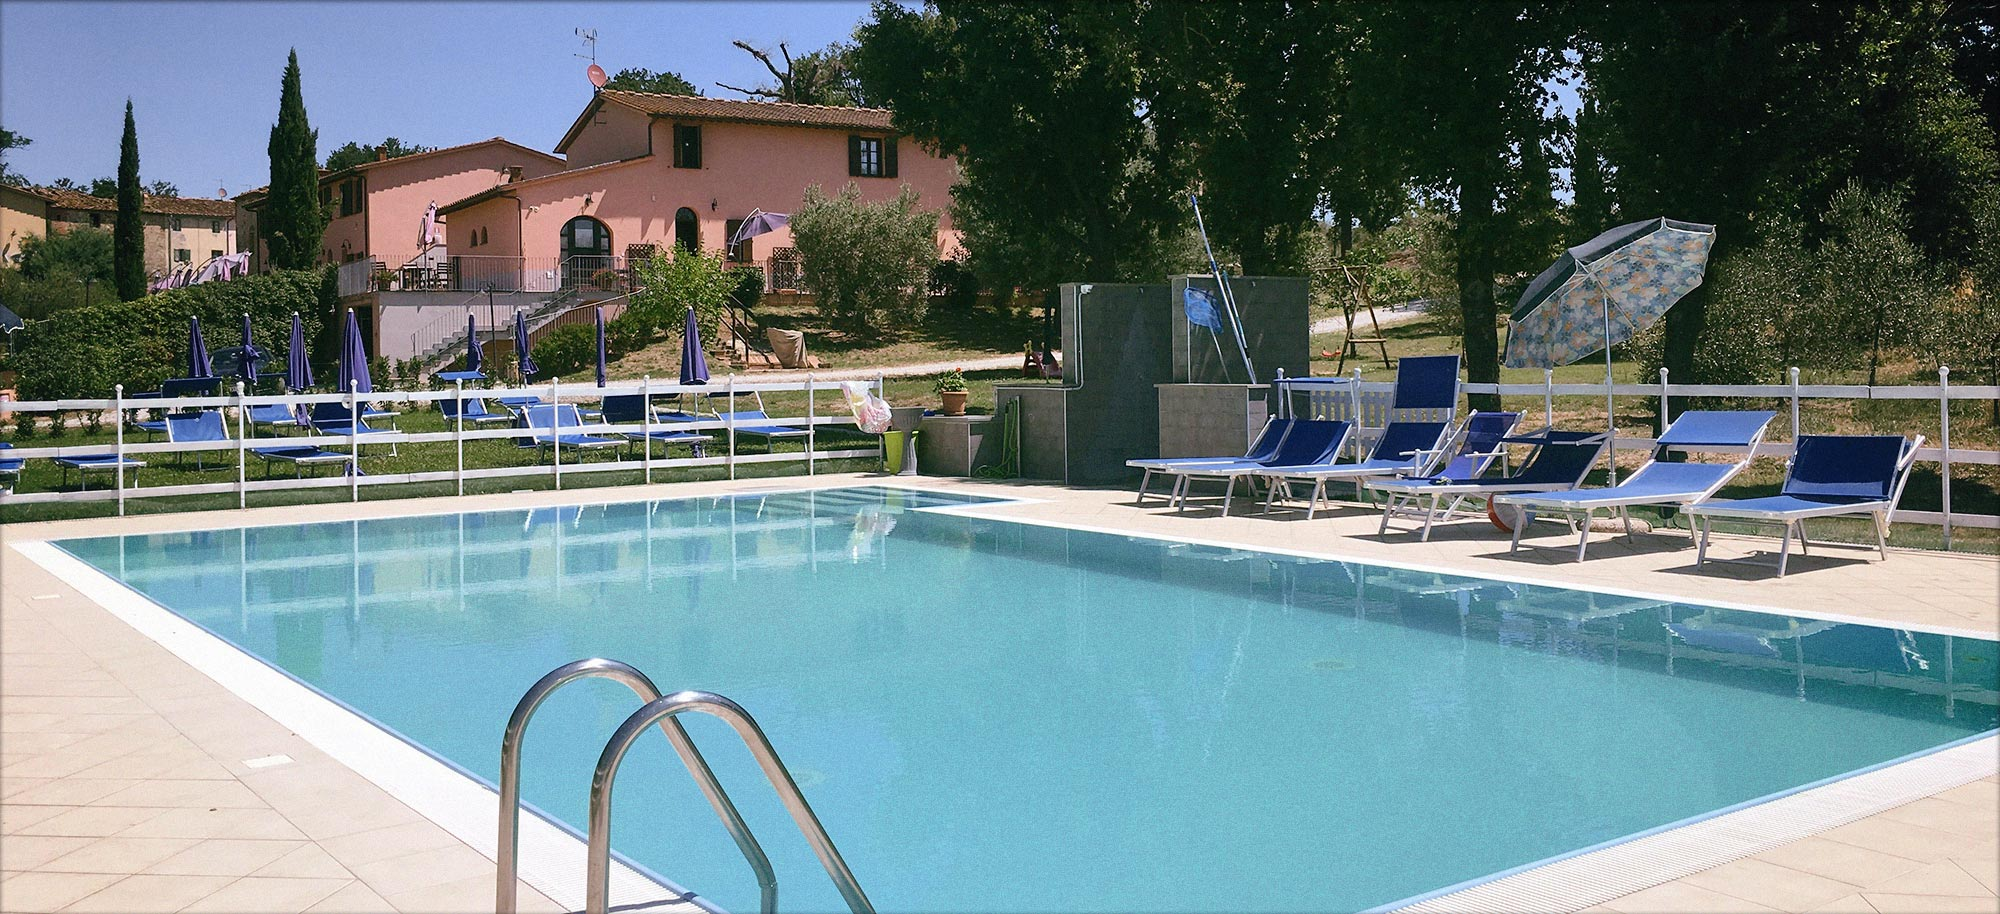 Corte Tommasi - Holiday apartments with swimming pool in Tuscany